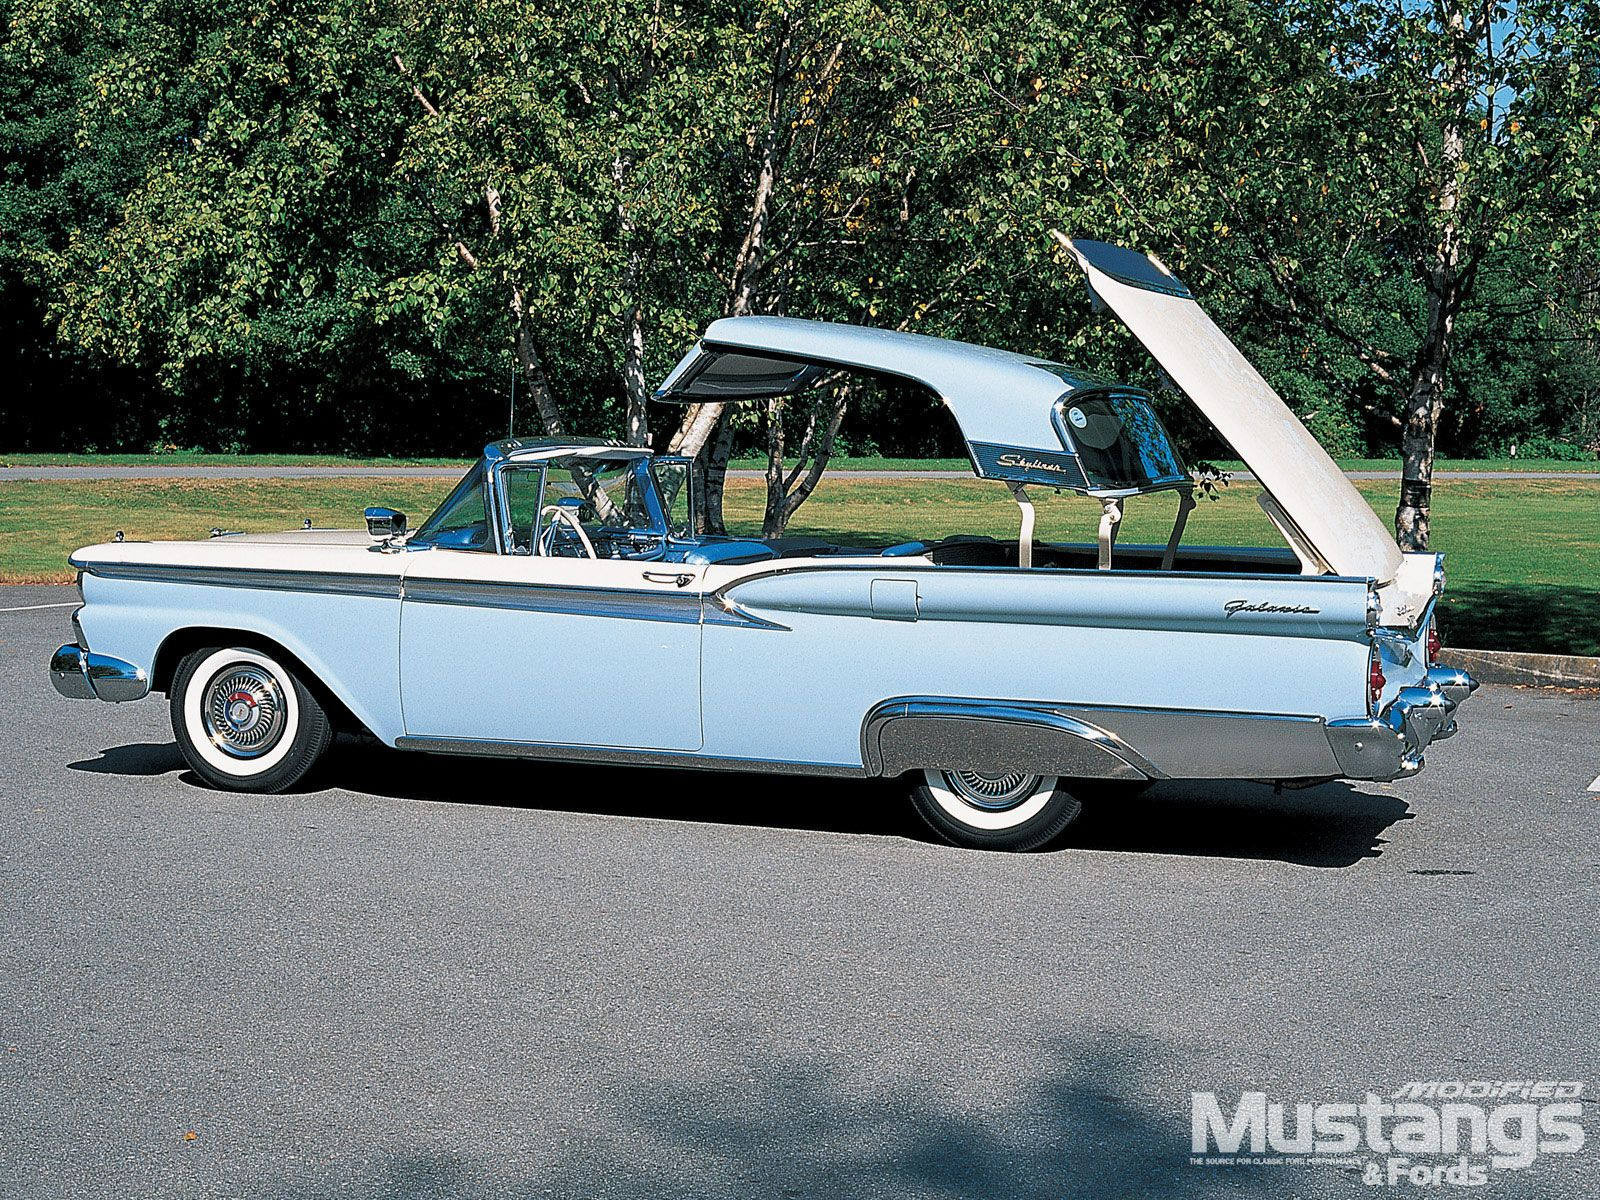 Mufp 0108 03 ford 1959 galaxie skyliner retractable interior photo 31434487 1959 ford galaxie skyliner retractable reach for the sky